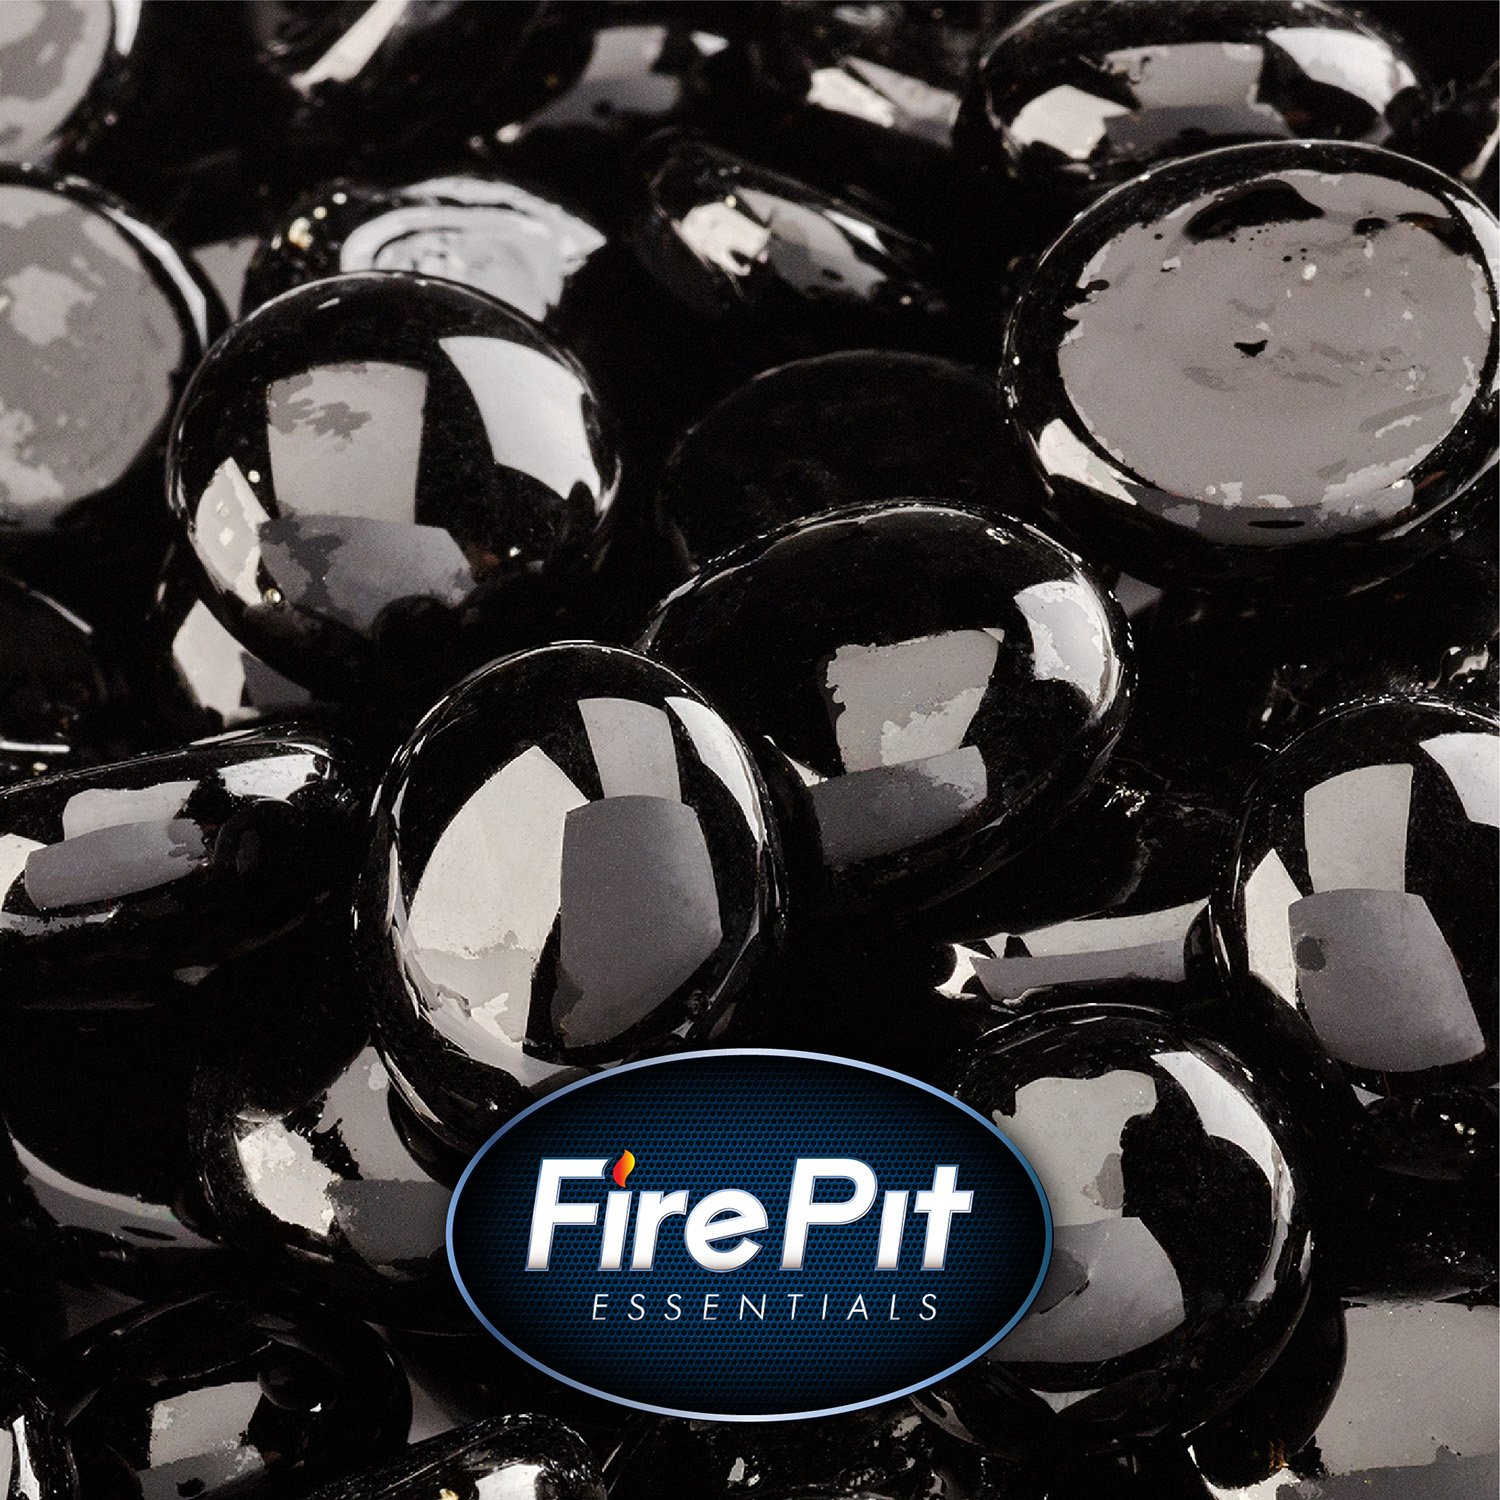 1/2'' Fire Glass Beads for Indoor or Outdoor Fire Pits or Fireplace (Black Sable)